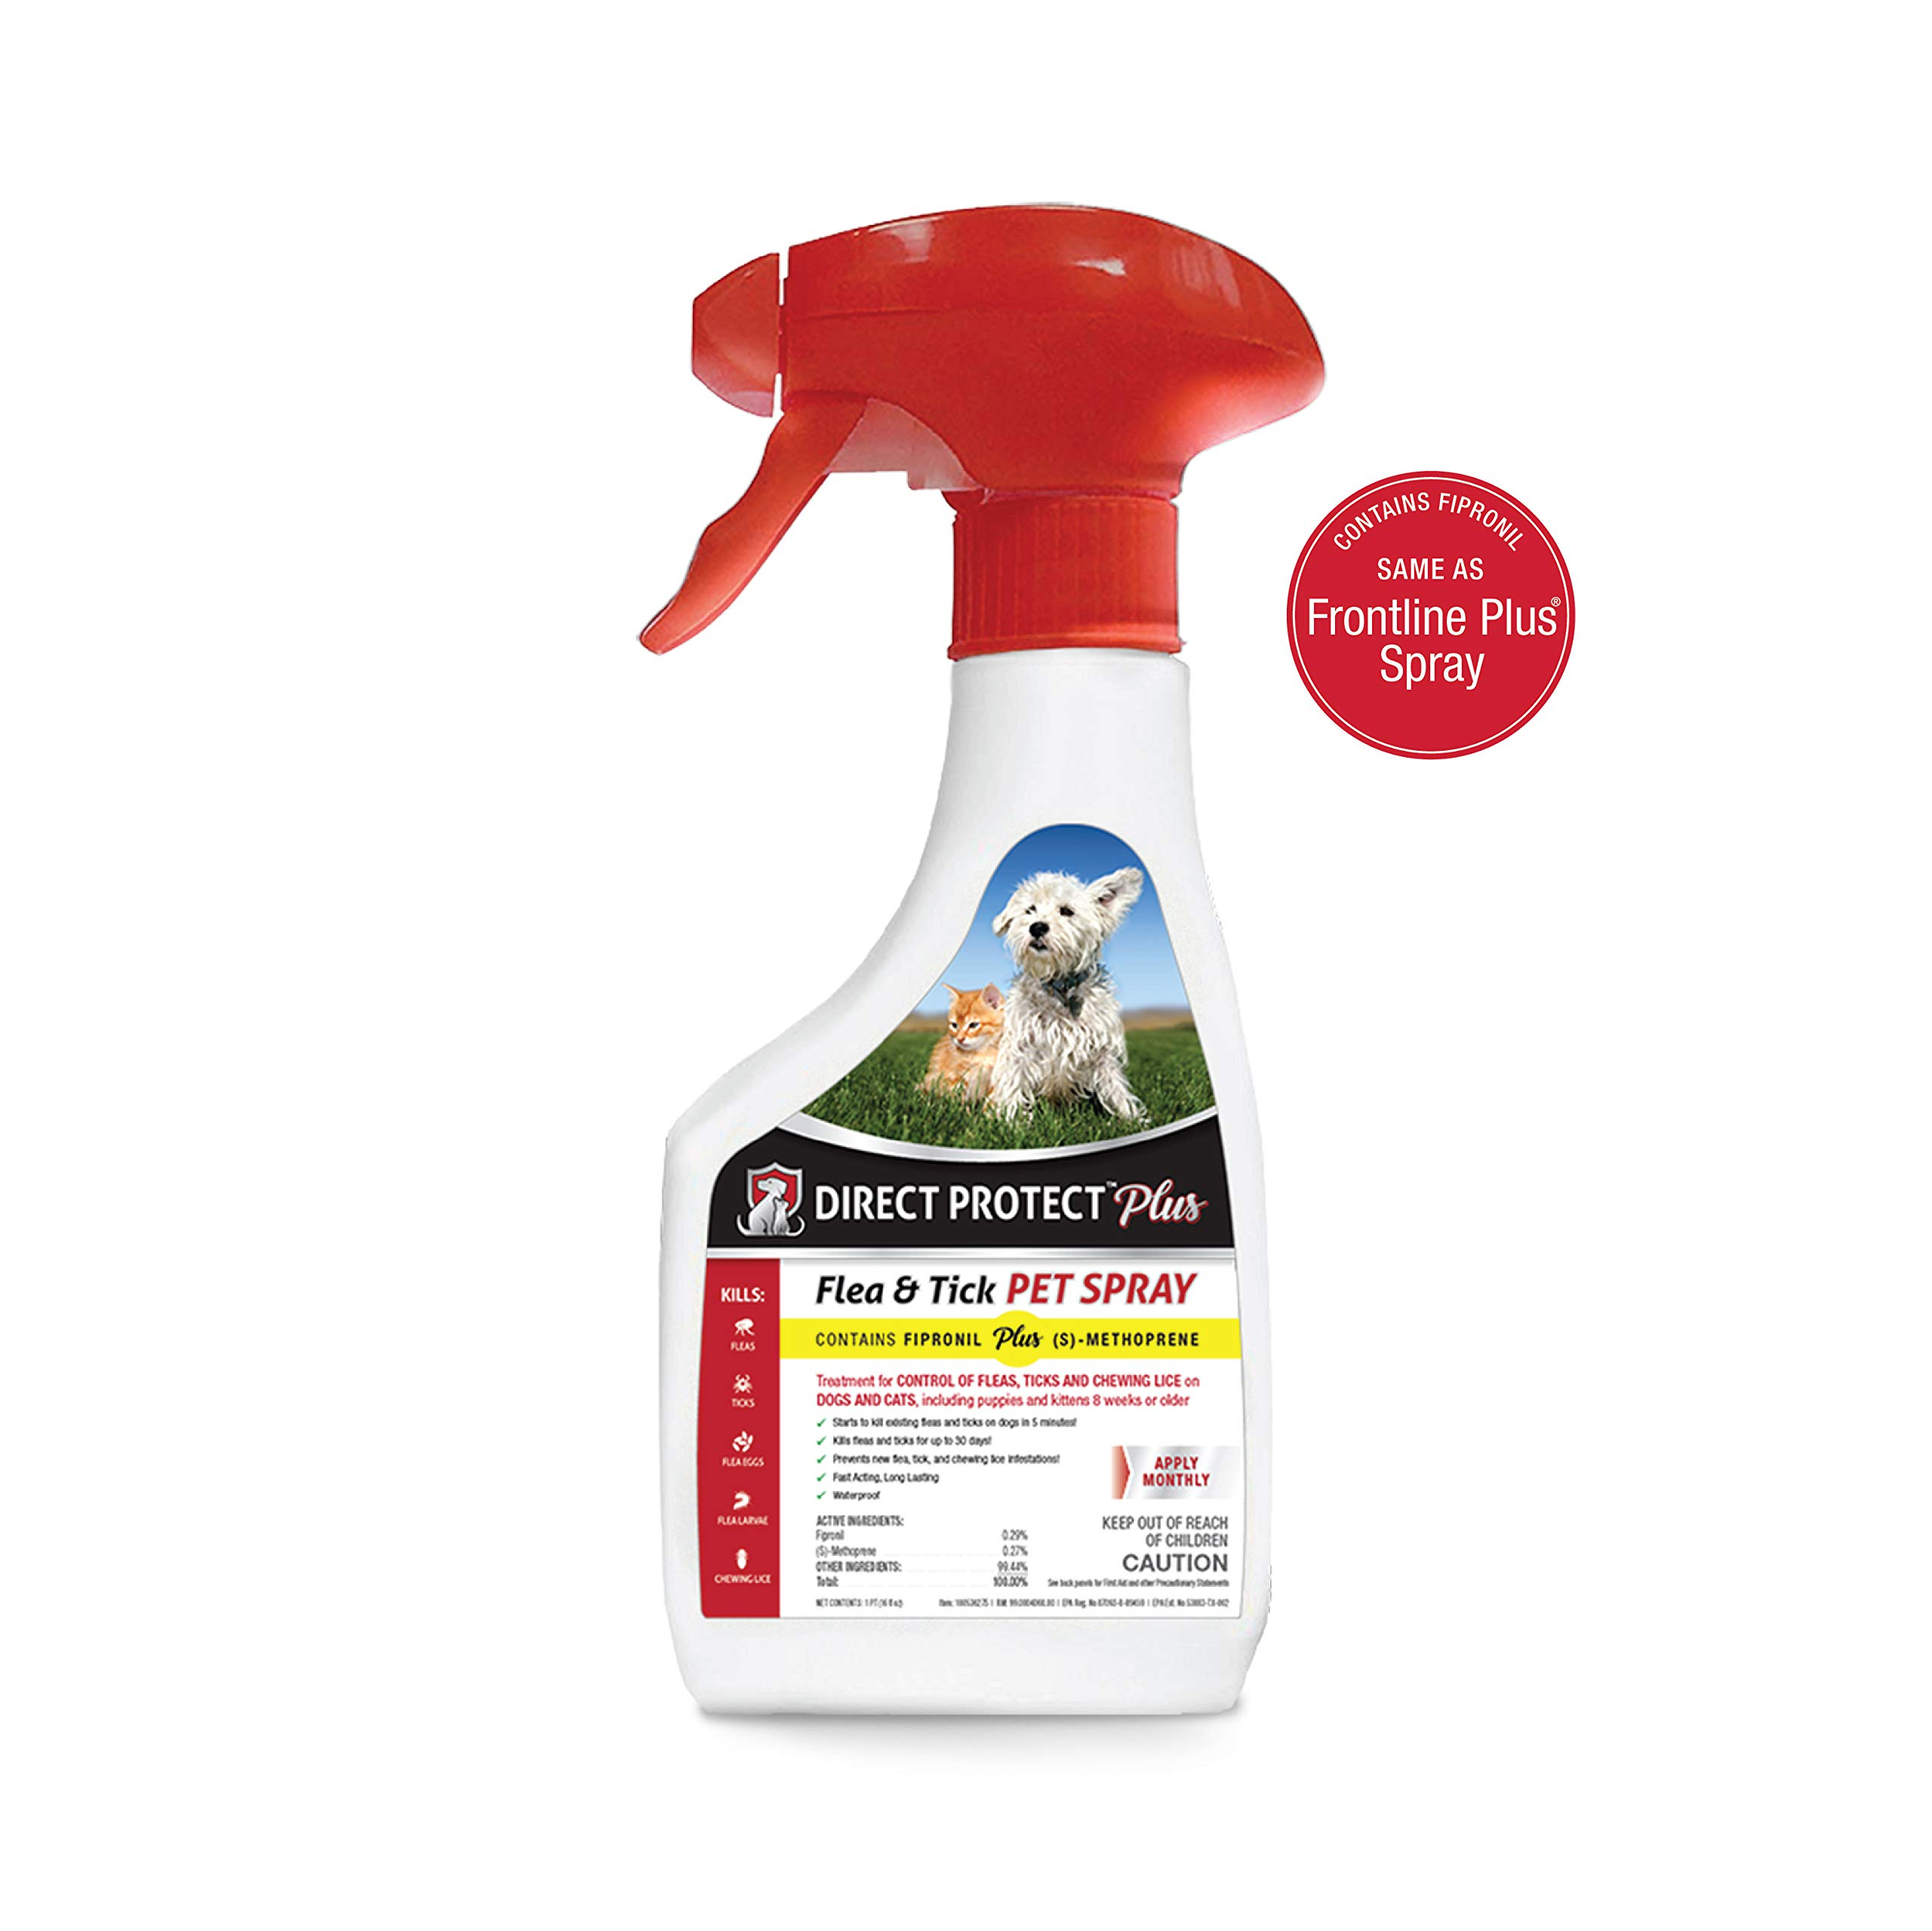 Direct Protect Plus Flea & Tick Pet Spray, for Dogs & Cats 8 weeks & Older, Waterproof & Fast Acting, 16 oz by Direct Protect Plus